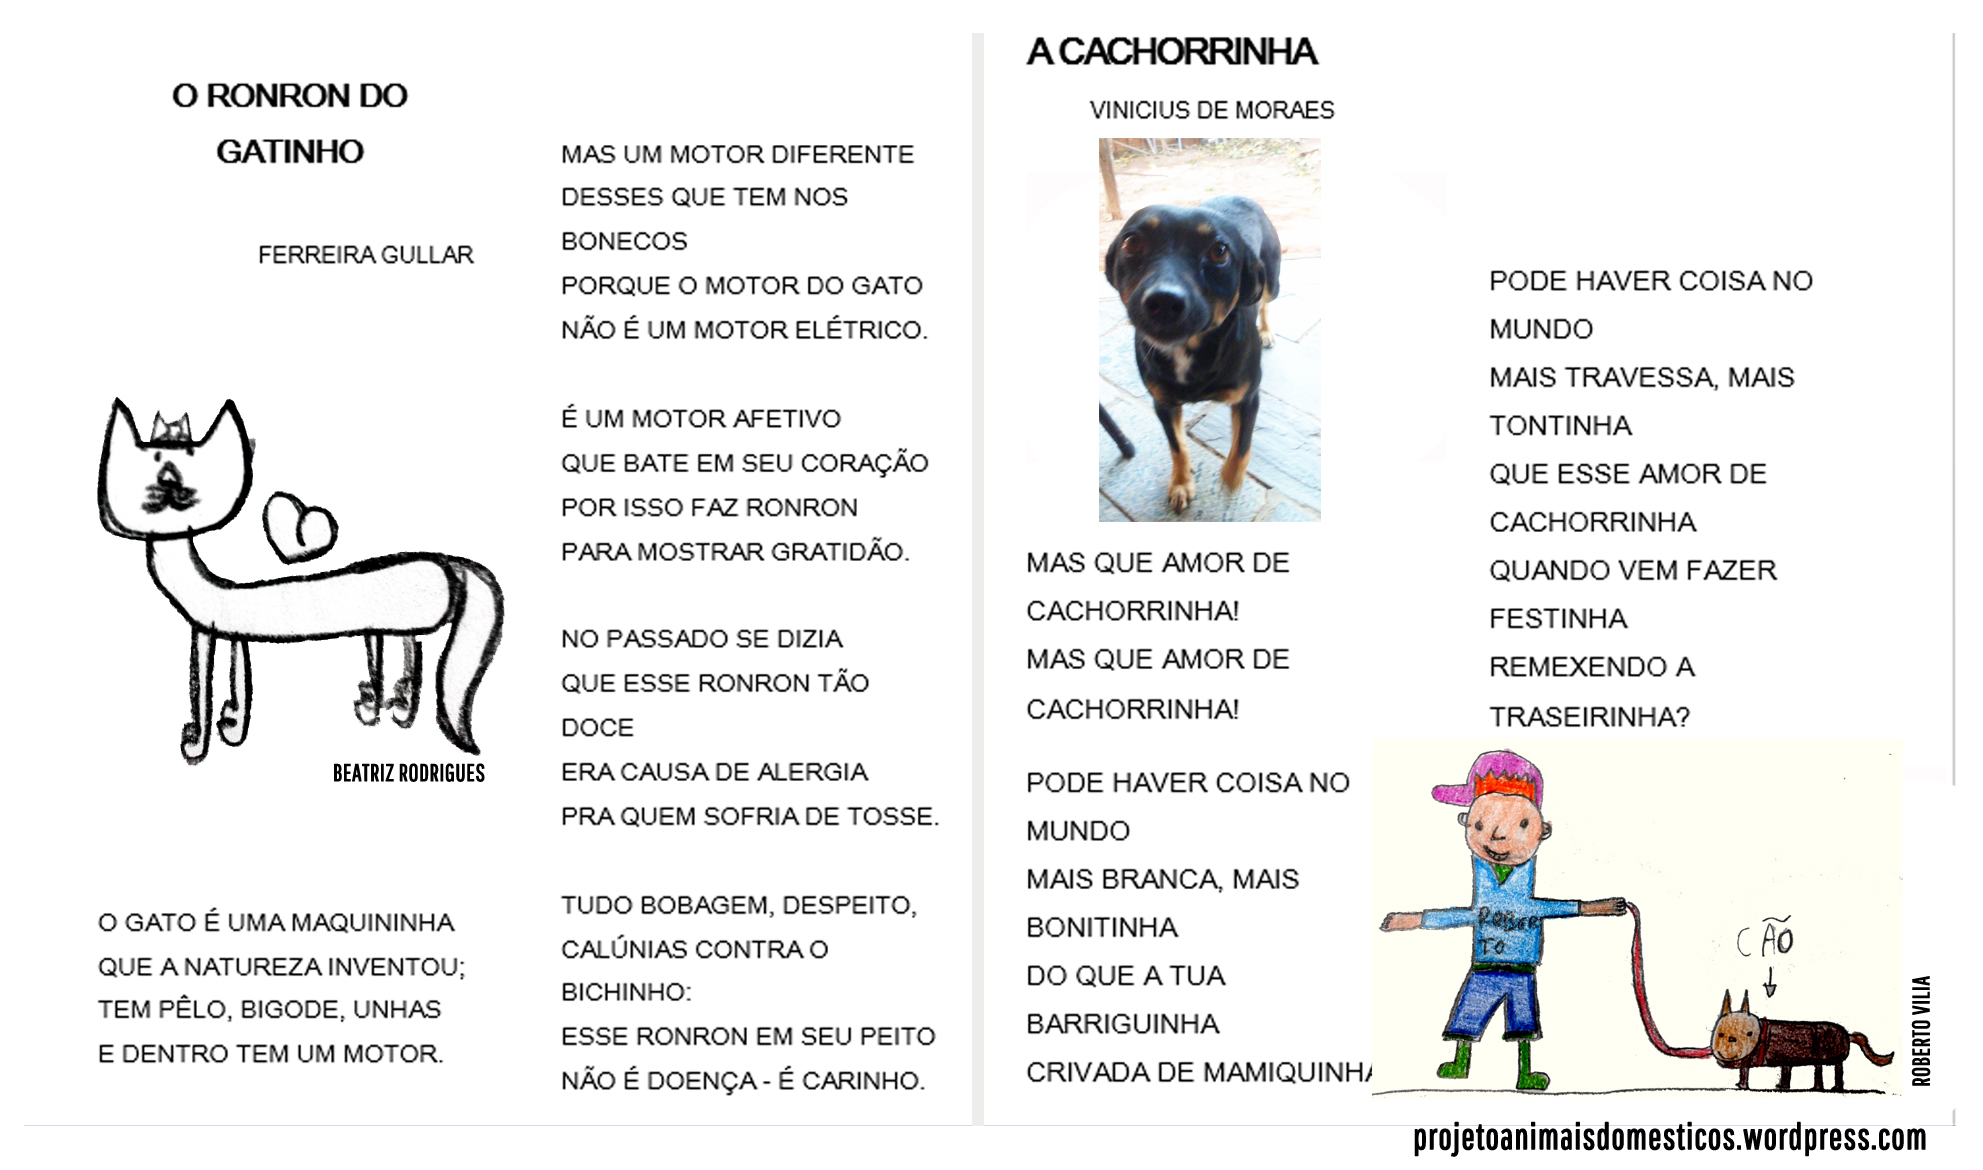 Well-known Poemas | Projeto Animais Domésticos VW35